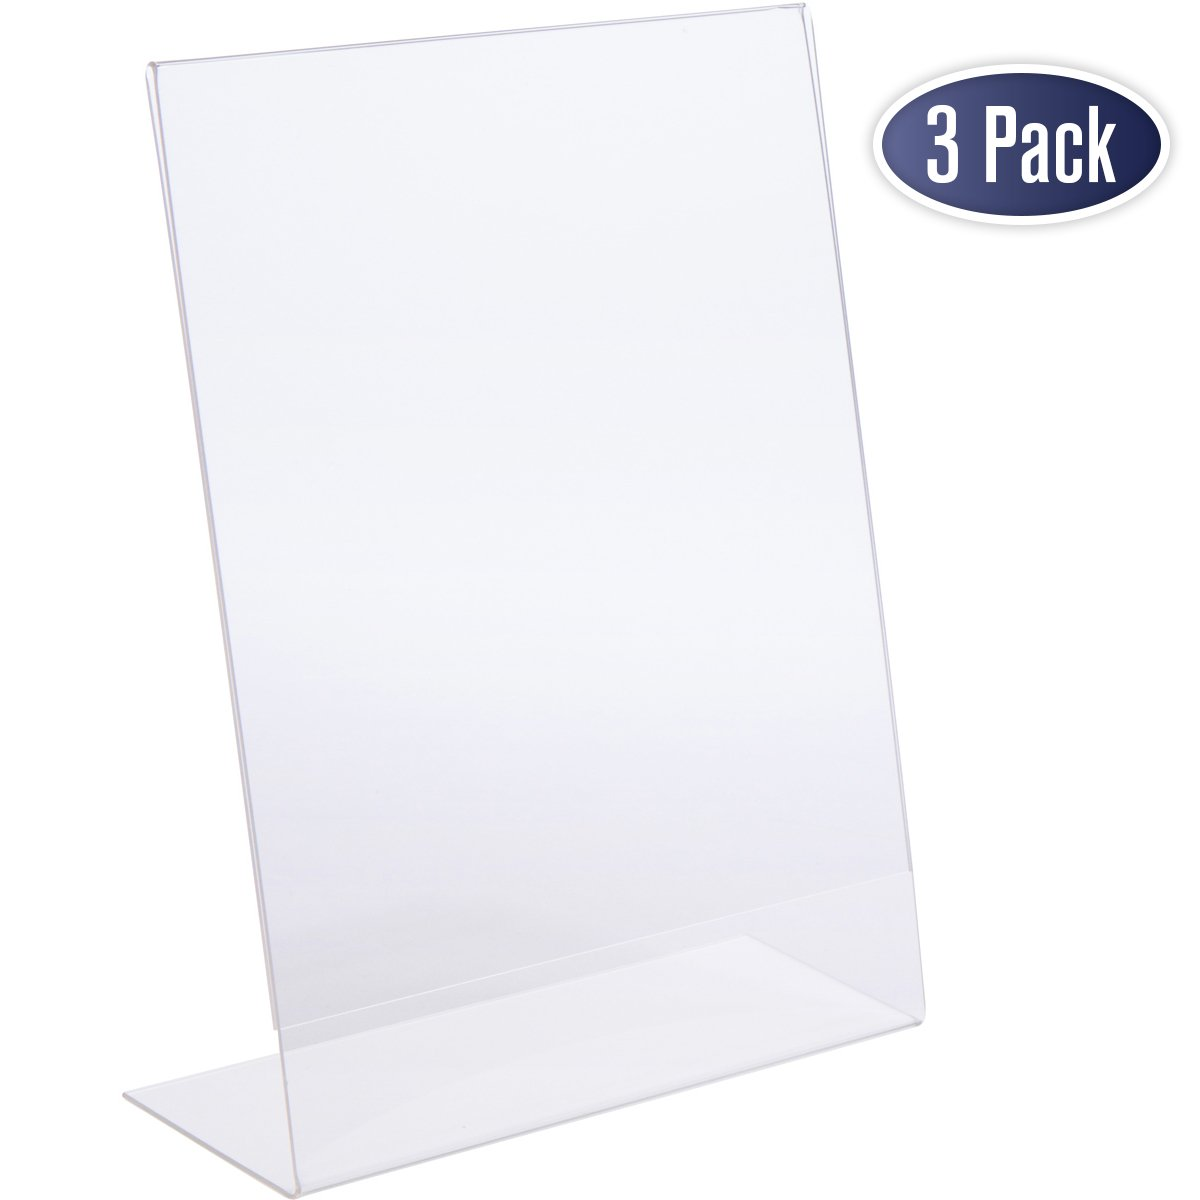 Slant Back Acrylic Sign Holder, 8.5 x 11 Inches Economy Portrait Ad Frames, Perfect for Home, Office, Store, Restaraunt (3 Pack)